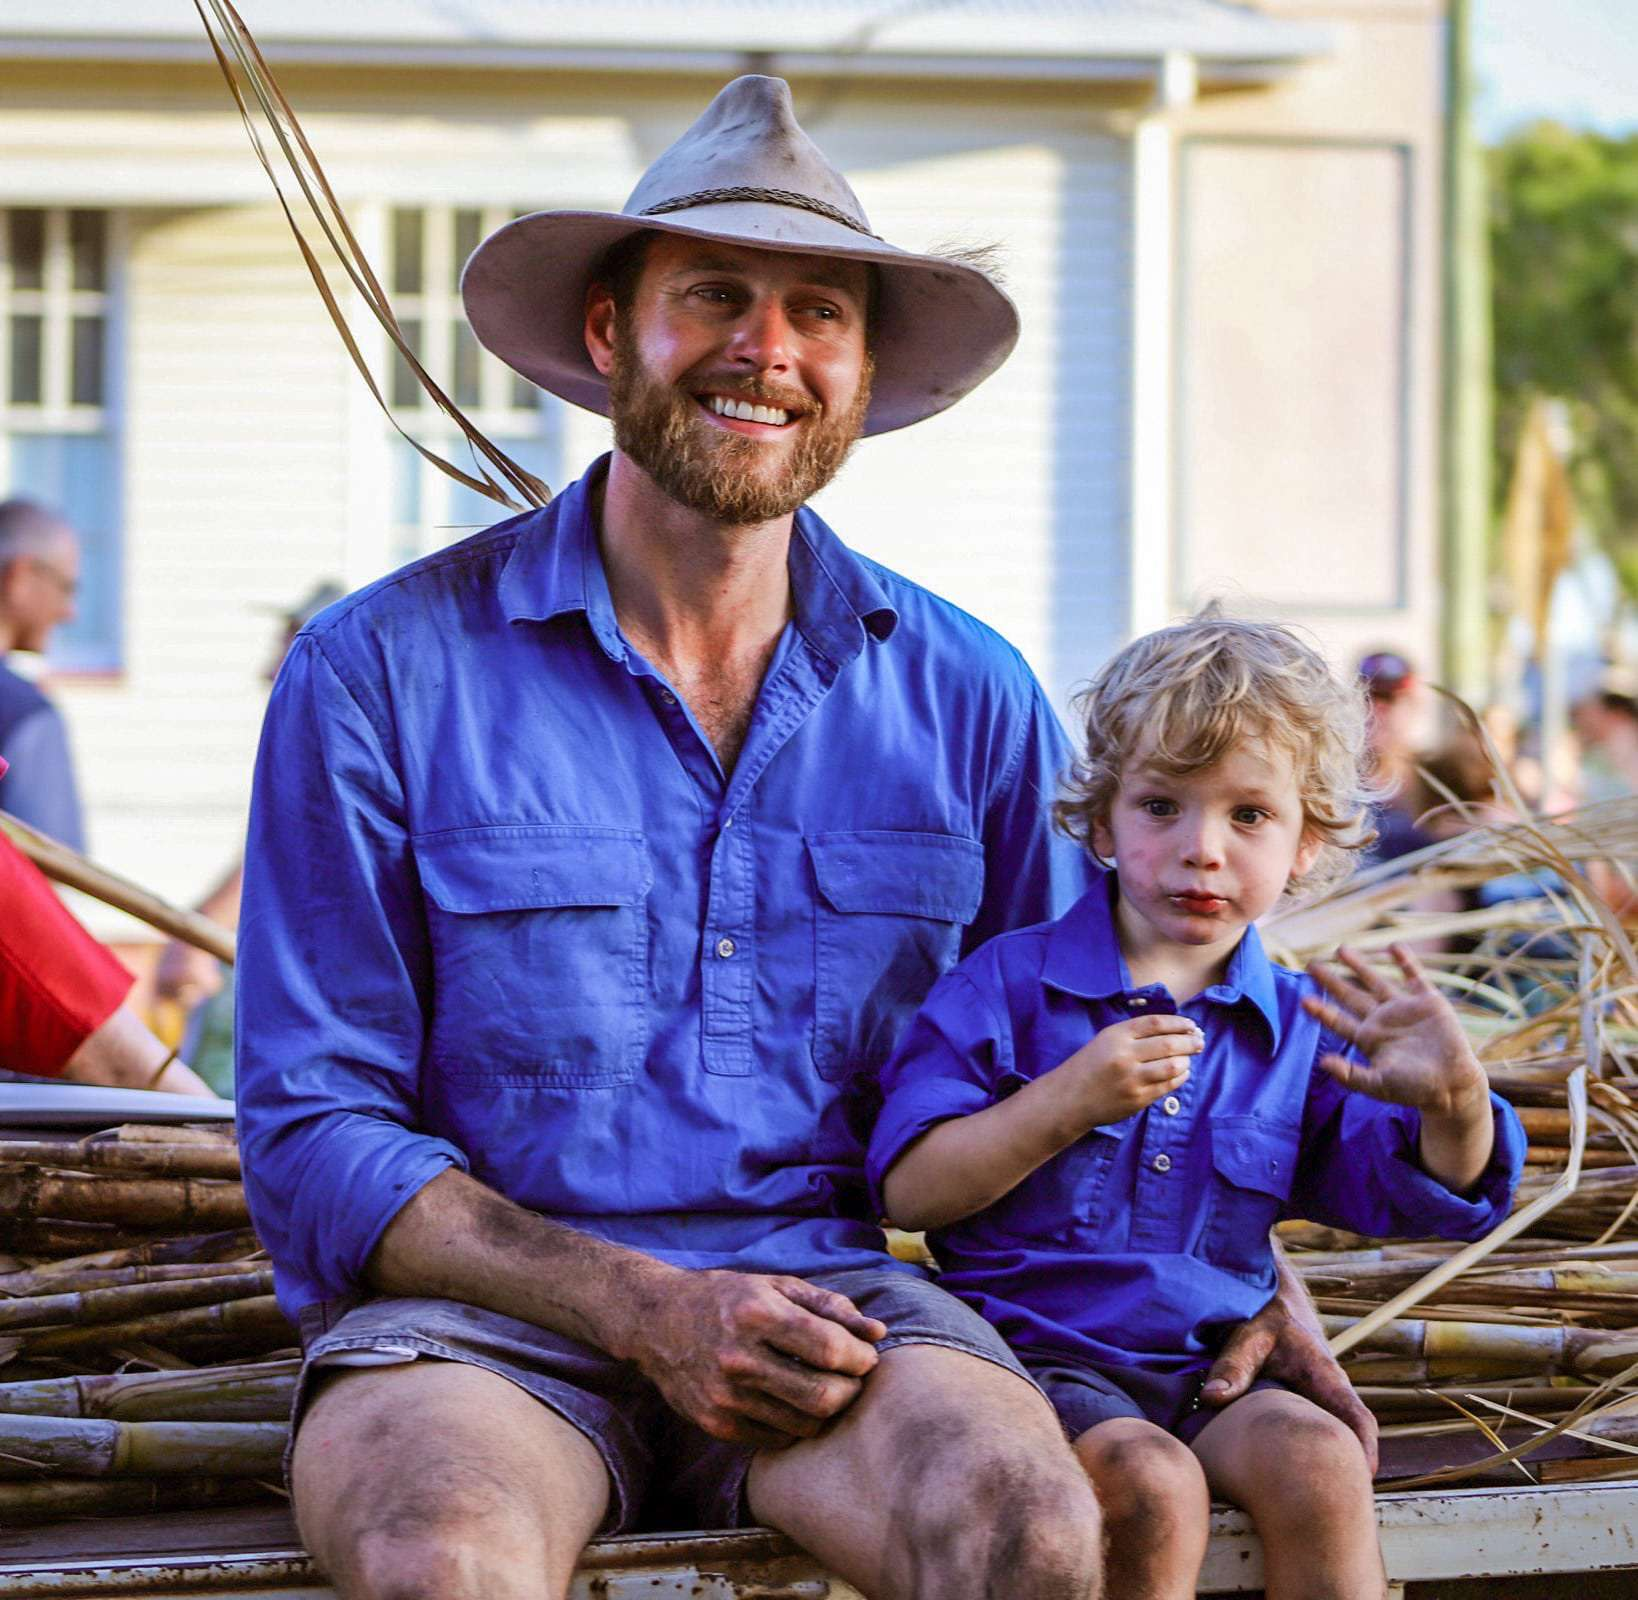 dave and ryder nephew dressed as cane cutters home hill harvest fest parade 2019 1